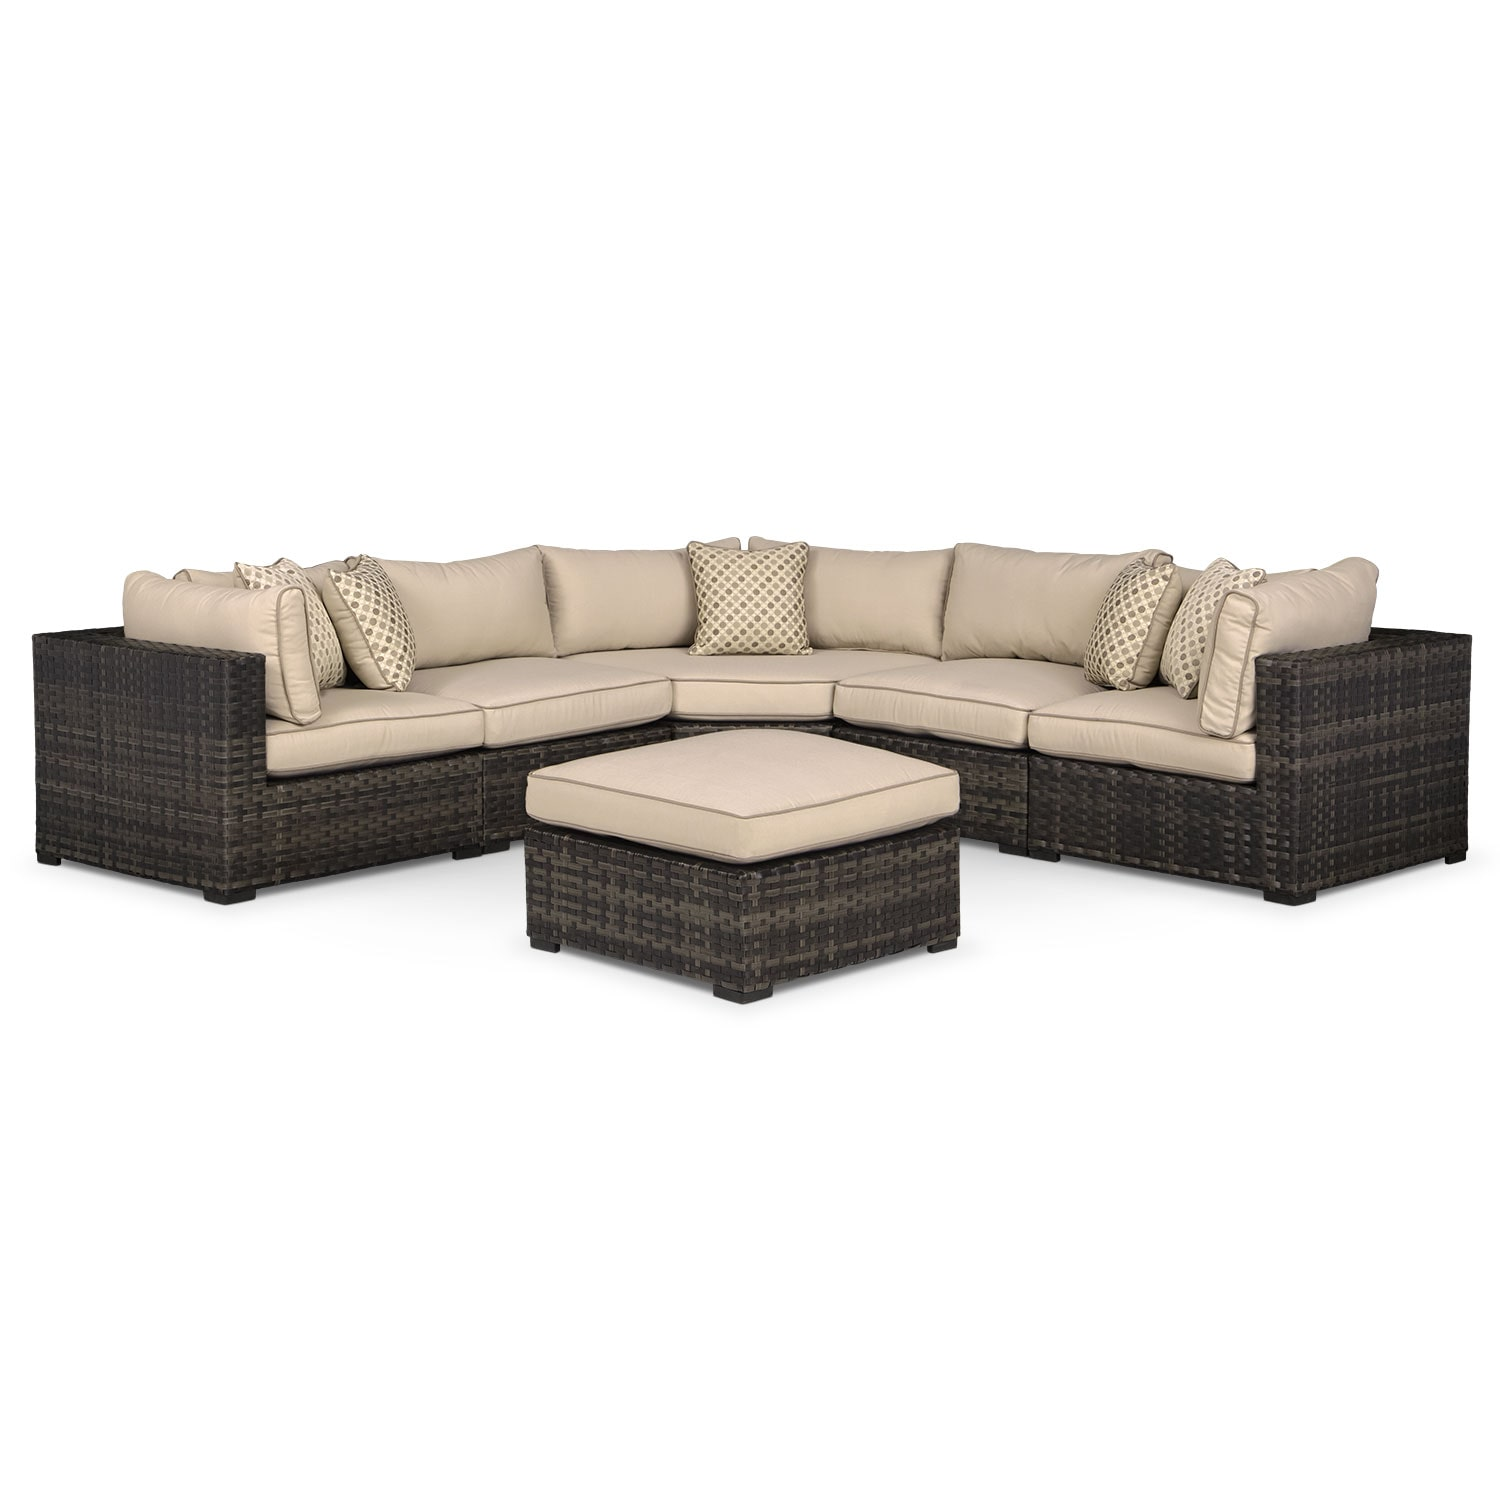 Outdoor Furniture - Regatta 5-Piece Outdoor Sectional with Wedge and Ottoman - Brown